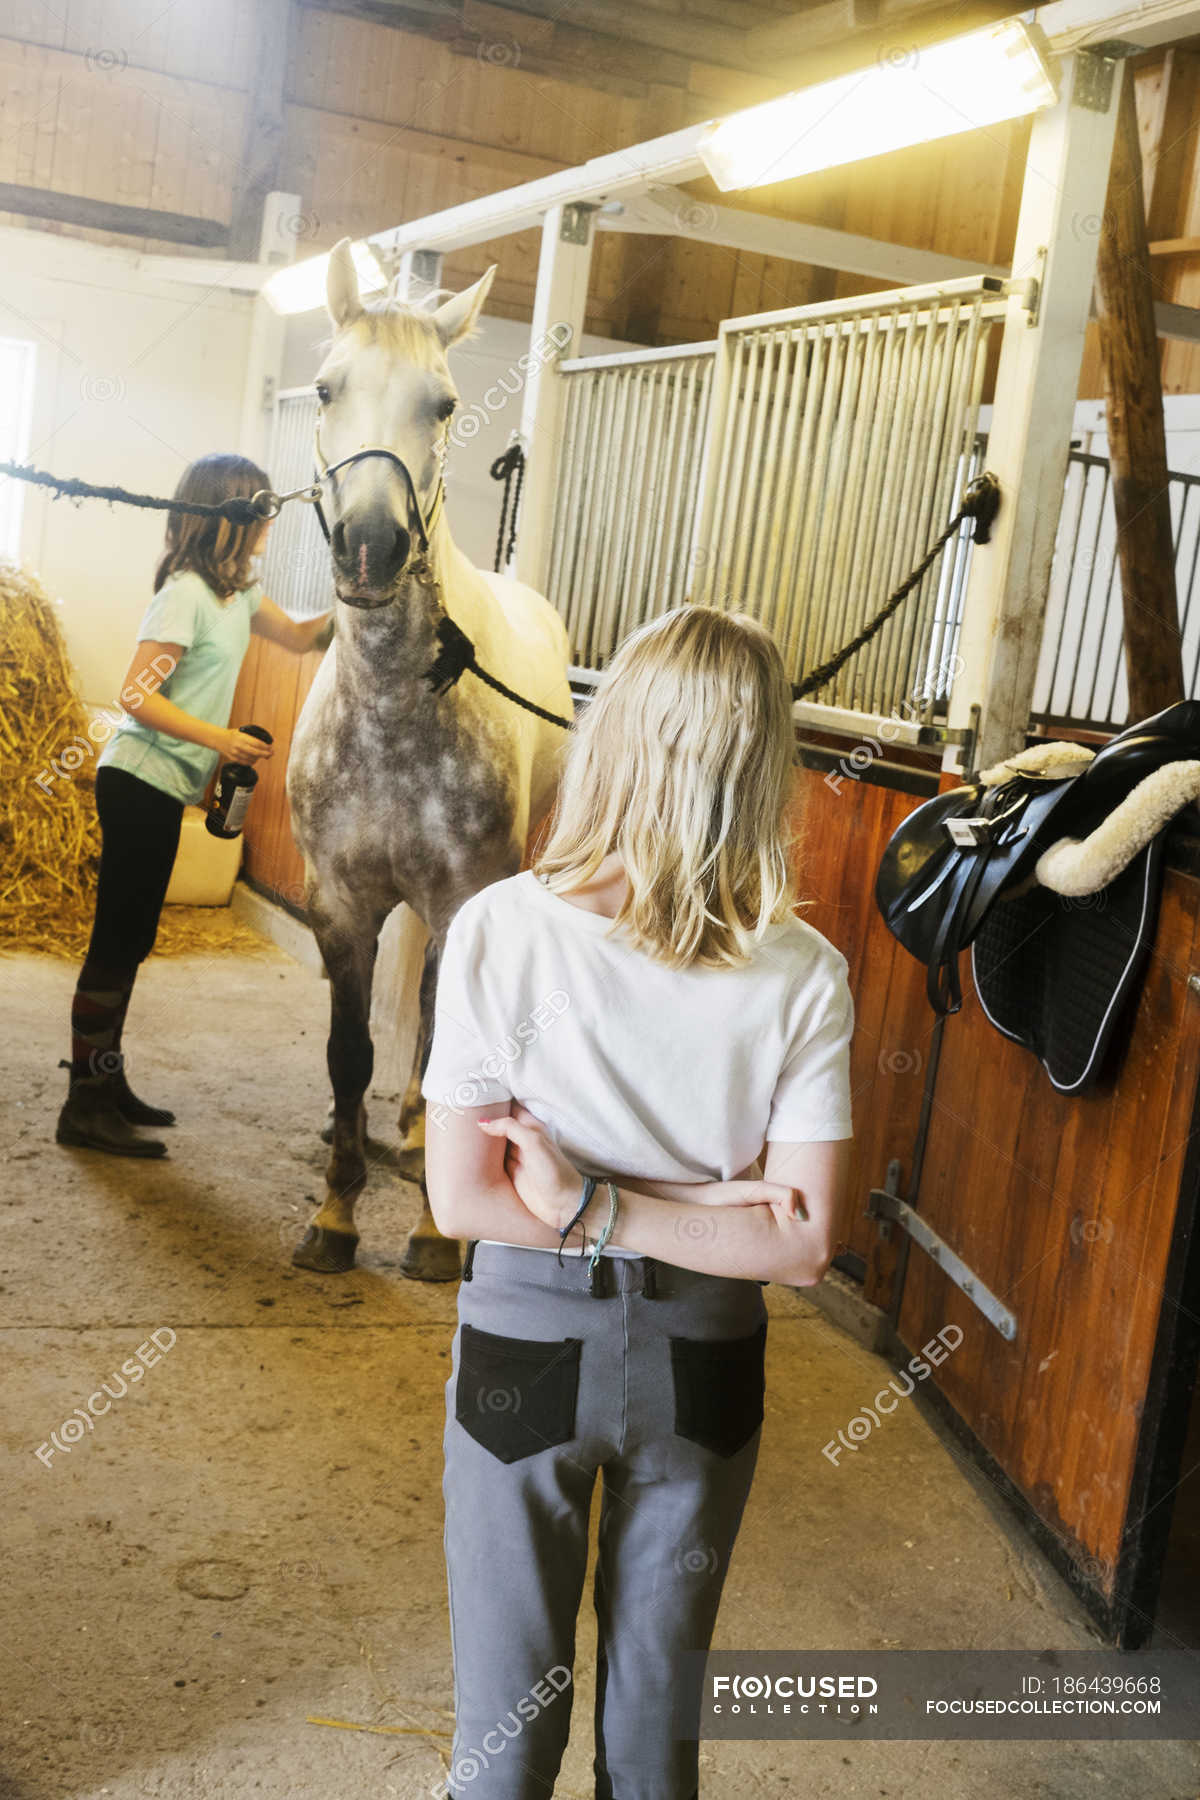 Girls And White Horse In Stable Indoors Female Stock Photo 186439668